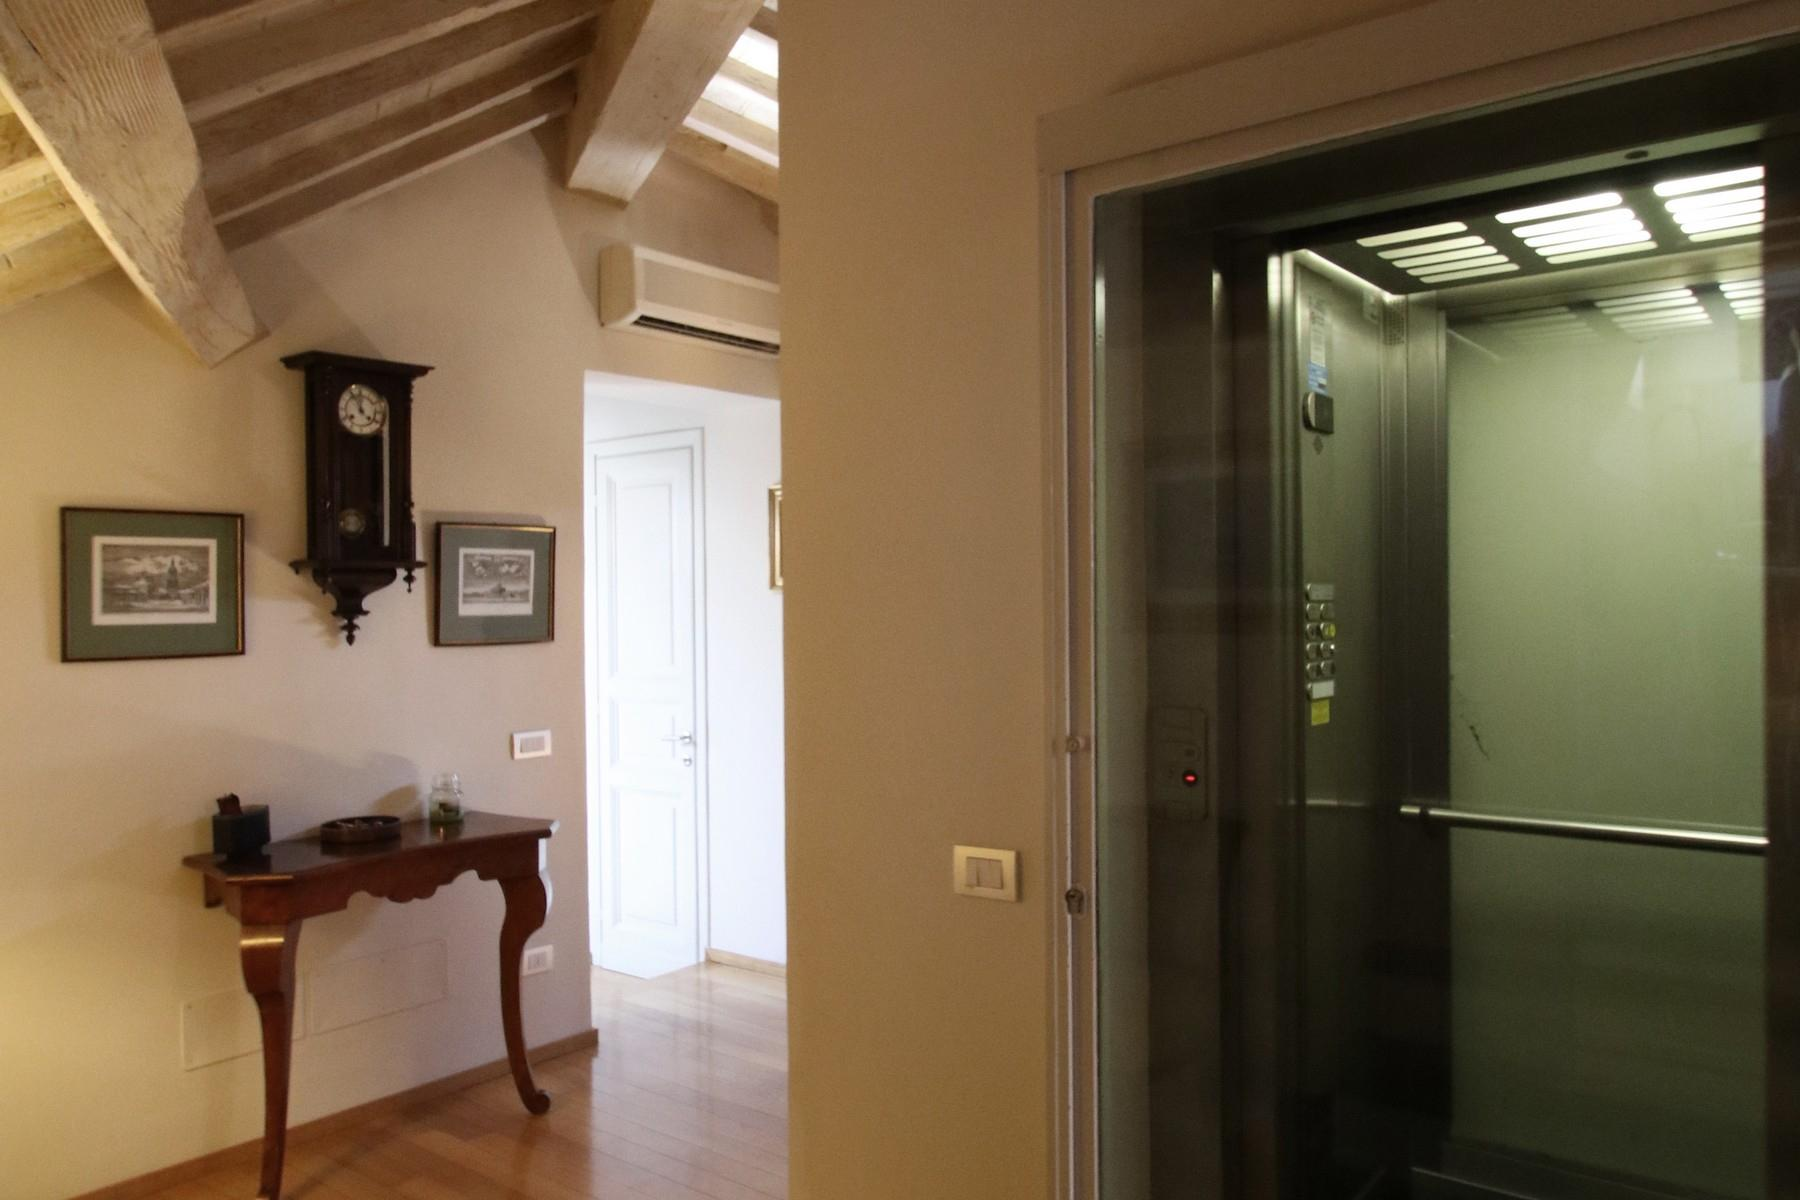 Flamboyant Top-floor Apartment with Tower in Bellosguardo, Florence - 15